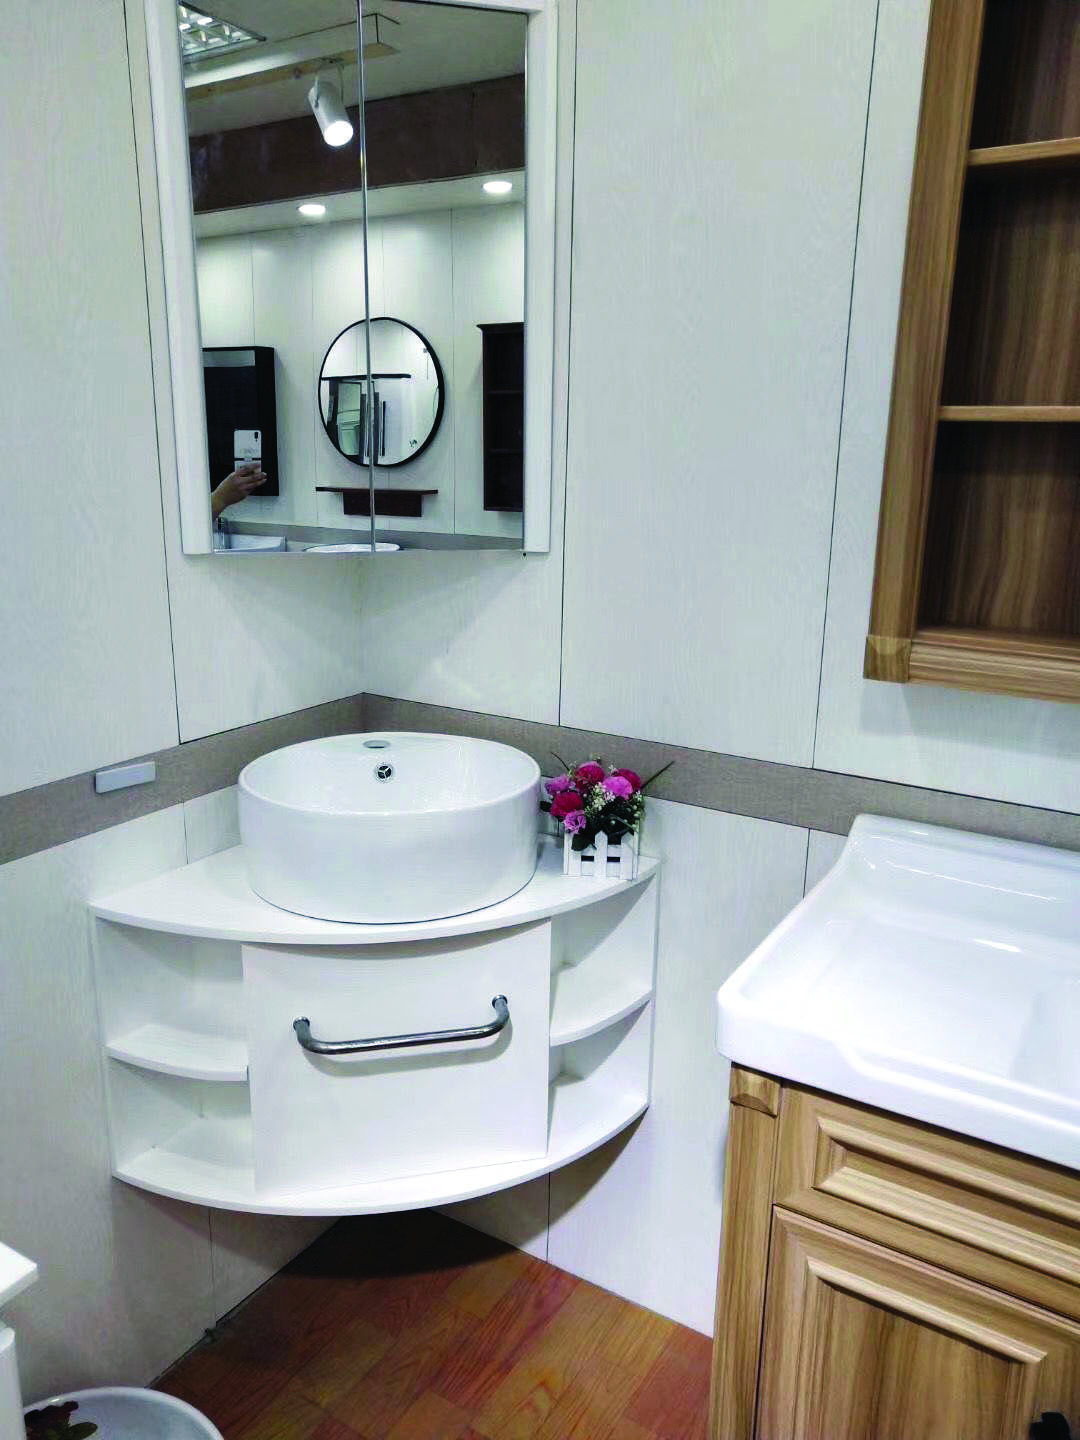 Superior Corner Bathroom Mirror Cabinet Uk Only On Alexadecor Com Bathroomdesignukikea Corner Sink Bathroom Corner Bathroom Vanity Corner Bathroom Mirror